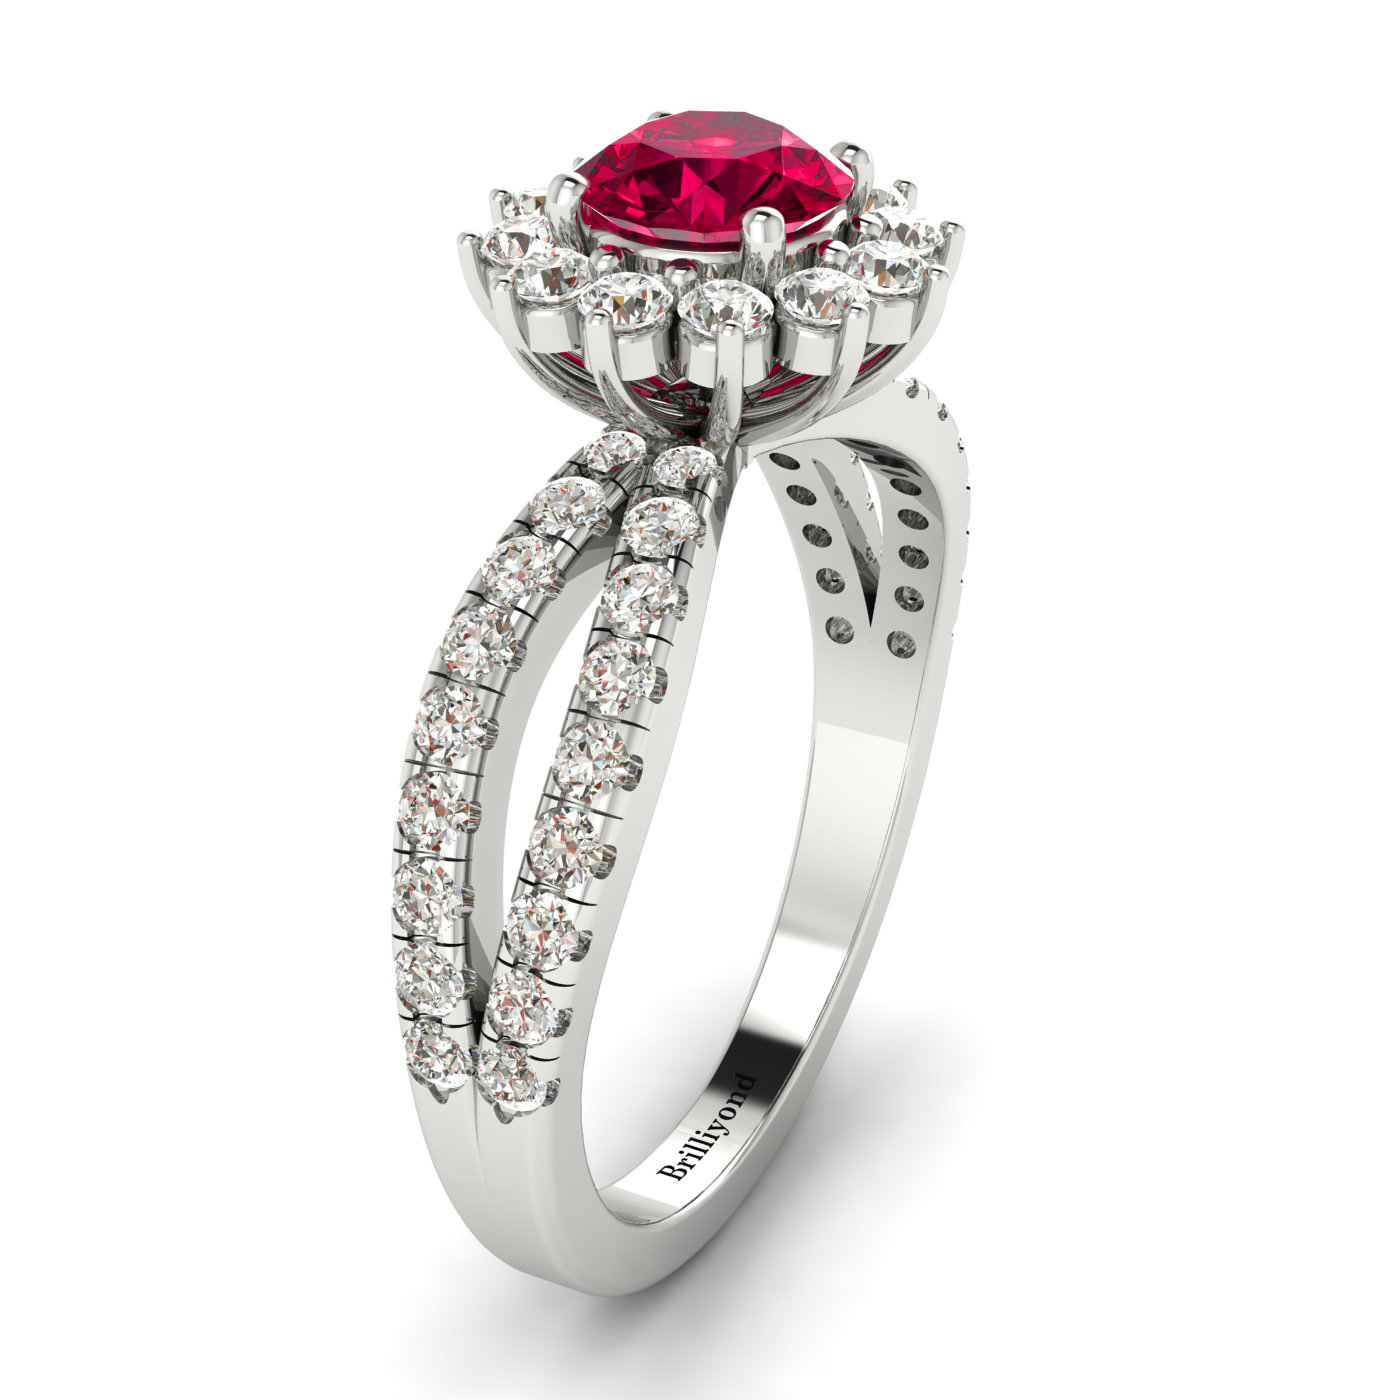 Ruby and Conflict-free Diamonds on 18k White Gold Band